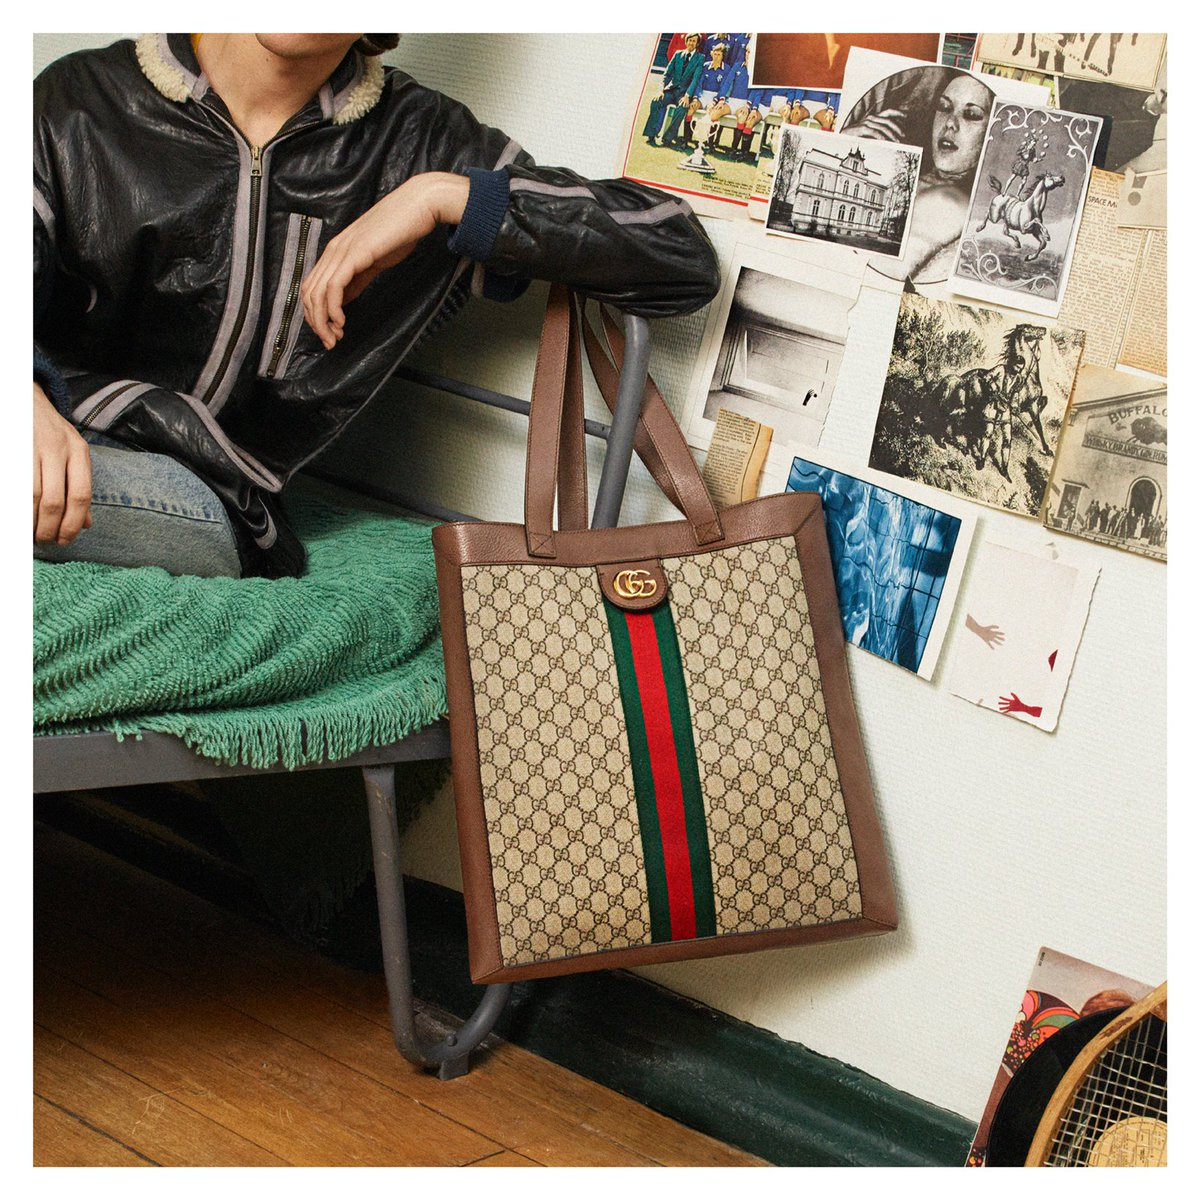 1454d669498 ... with a special tool that designs and visualizes a personalized tote  using a distinctive Gucci alphabet.  AlessandroMichele pic.twitter.com MmGfondNSj